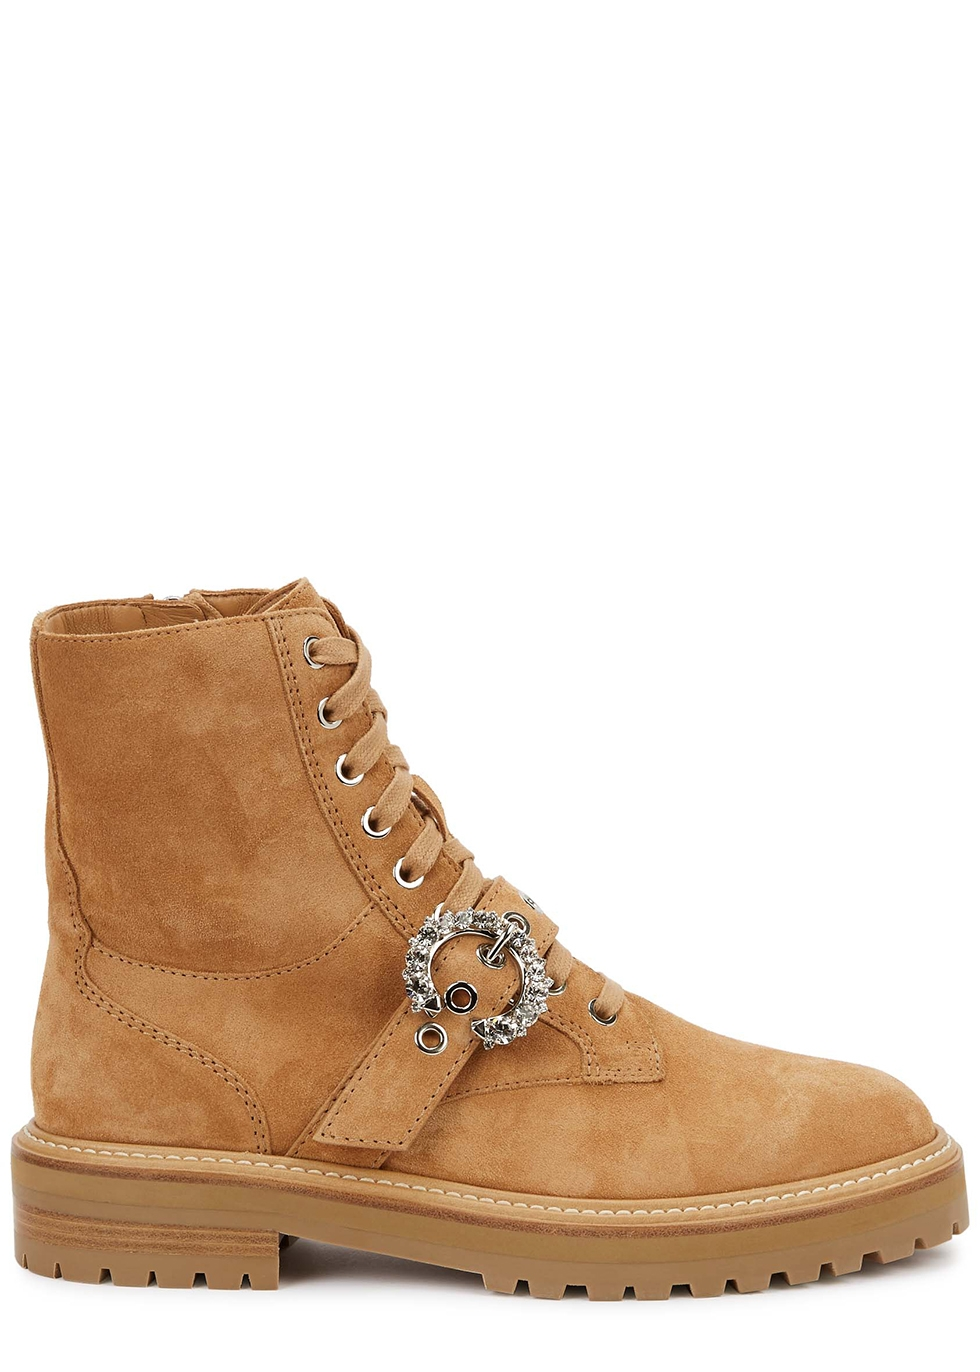 Cora camel suede ankle boots